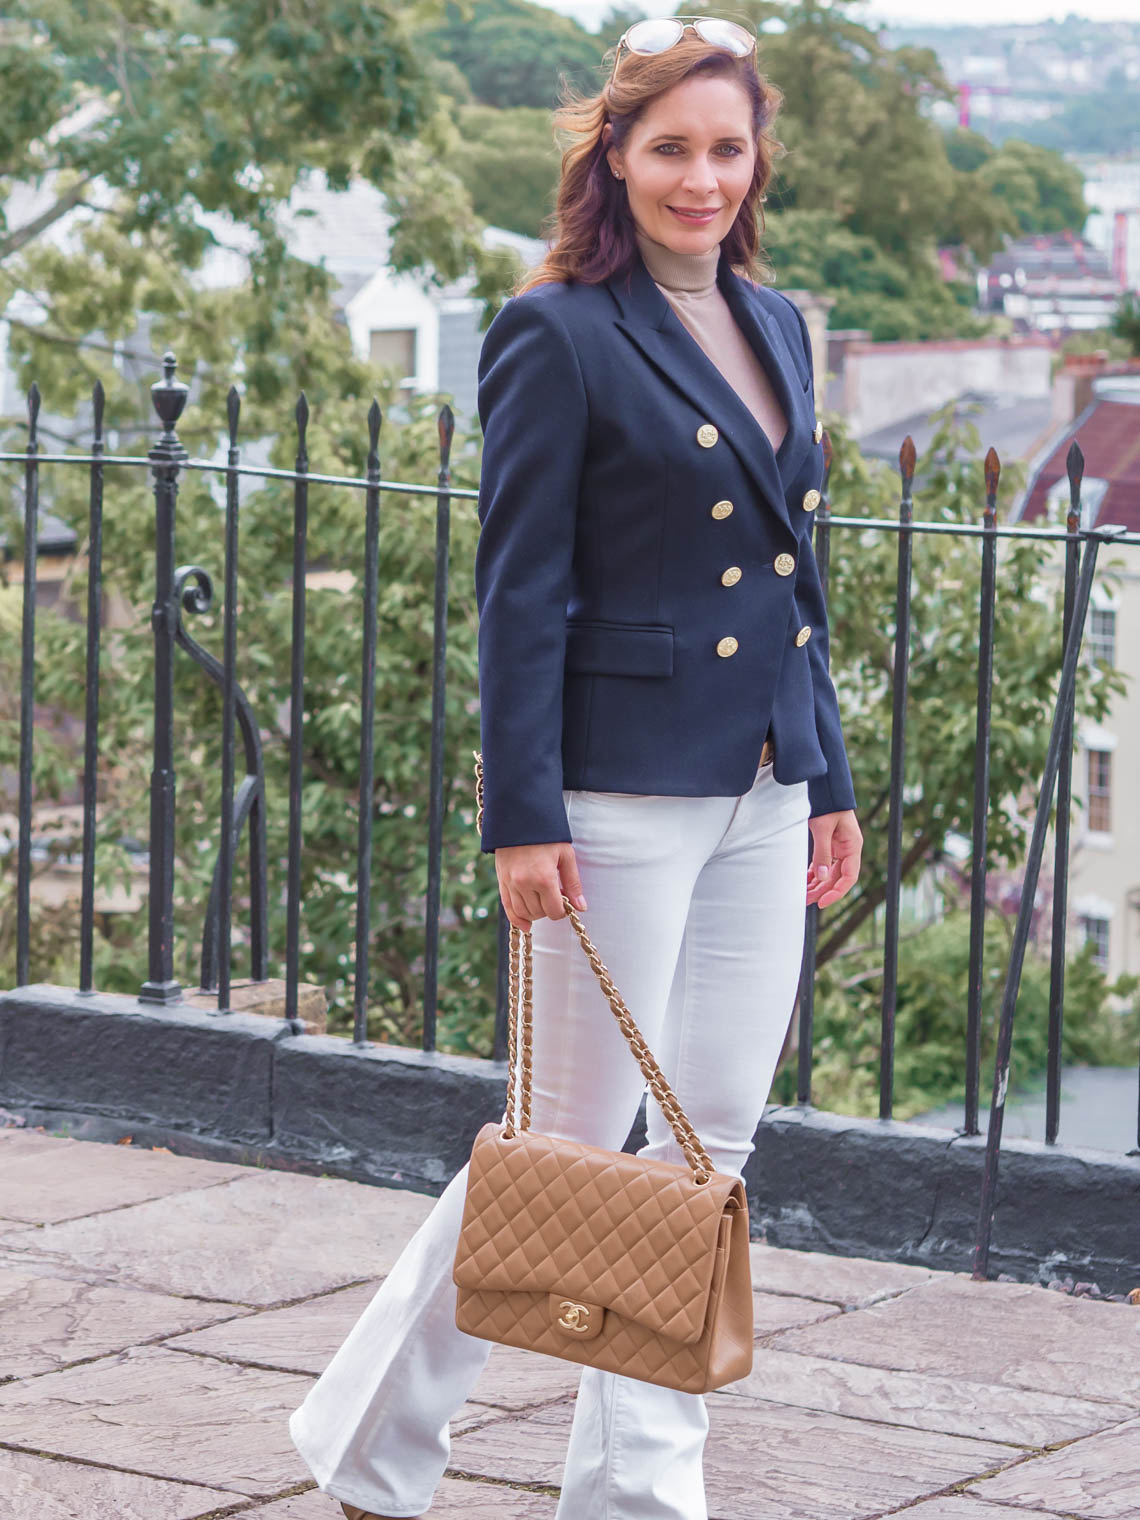 Chic Journal blogger wearing navy blue Holland Cooper jacket white flare jeans Chanel large flap bag